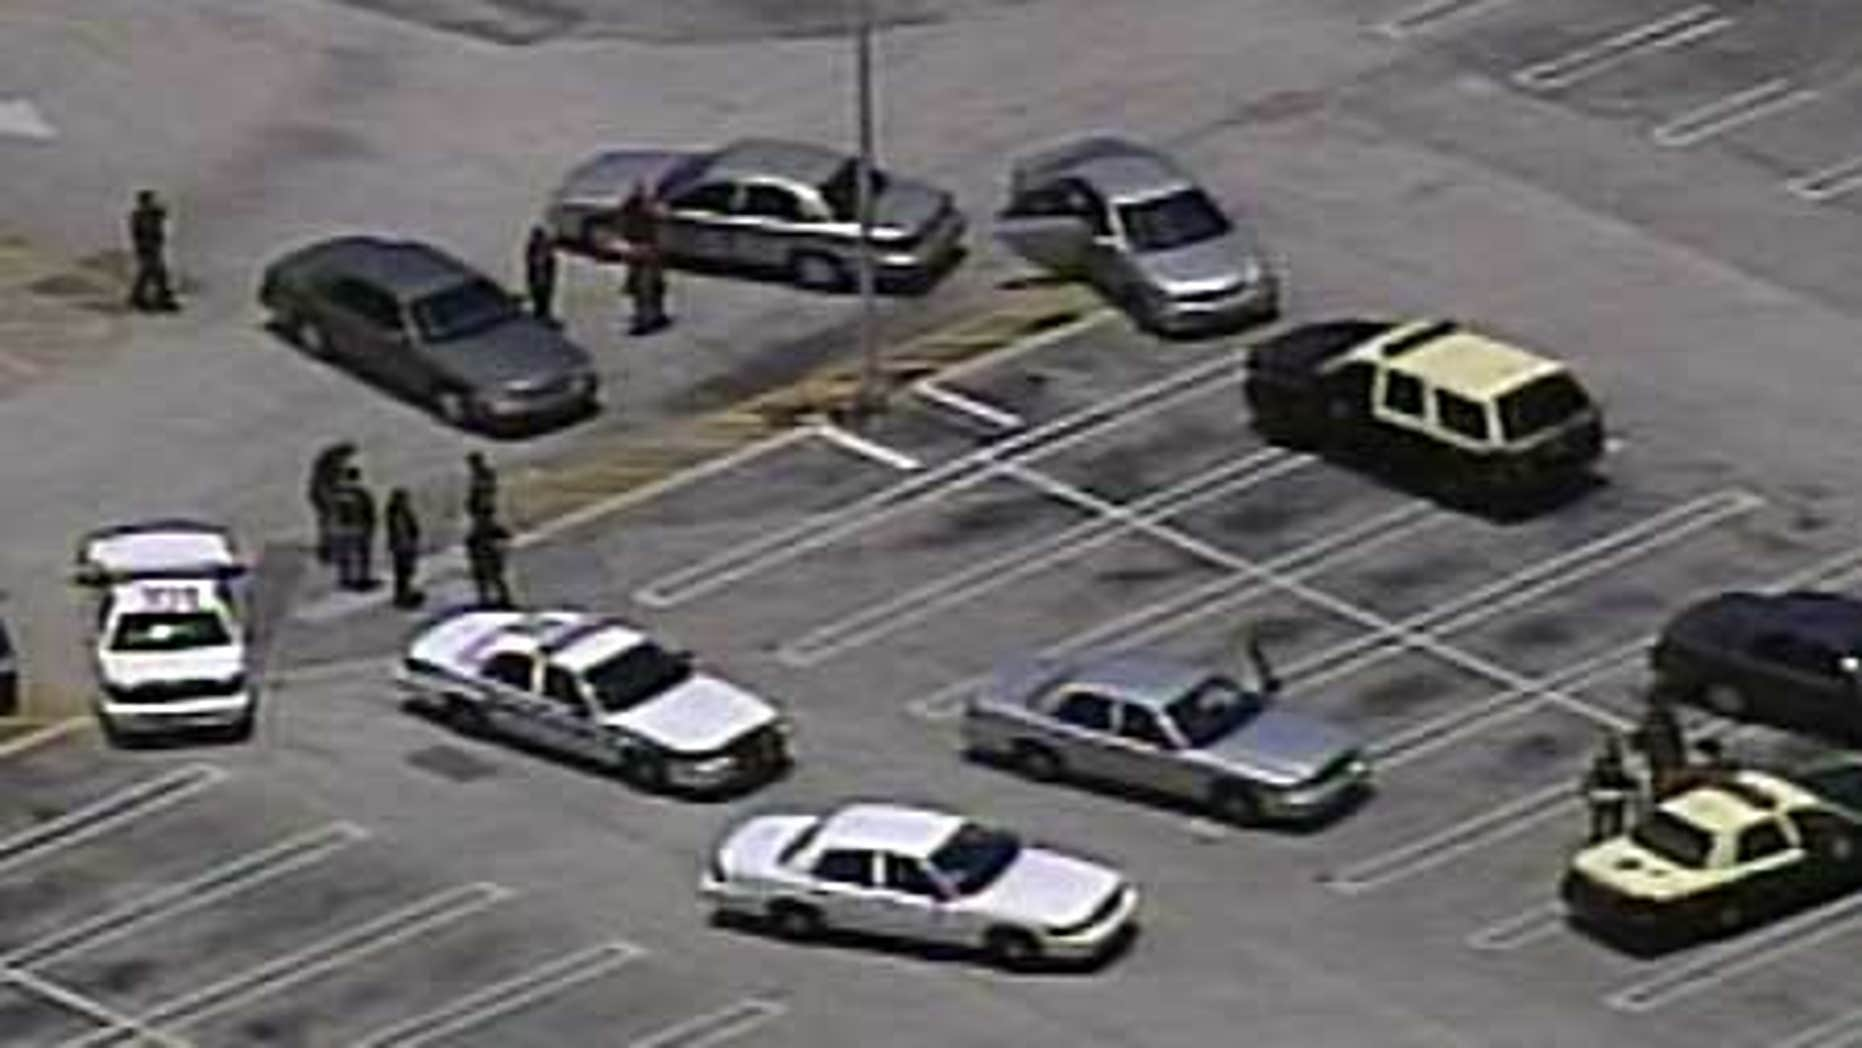 July 24: Police descend upon the University of South Florida after reports of a gunman on the loose put the campus on lockdown.